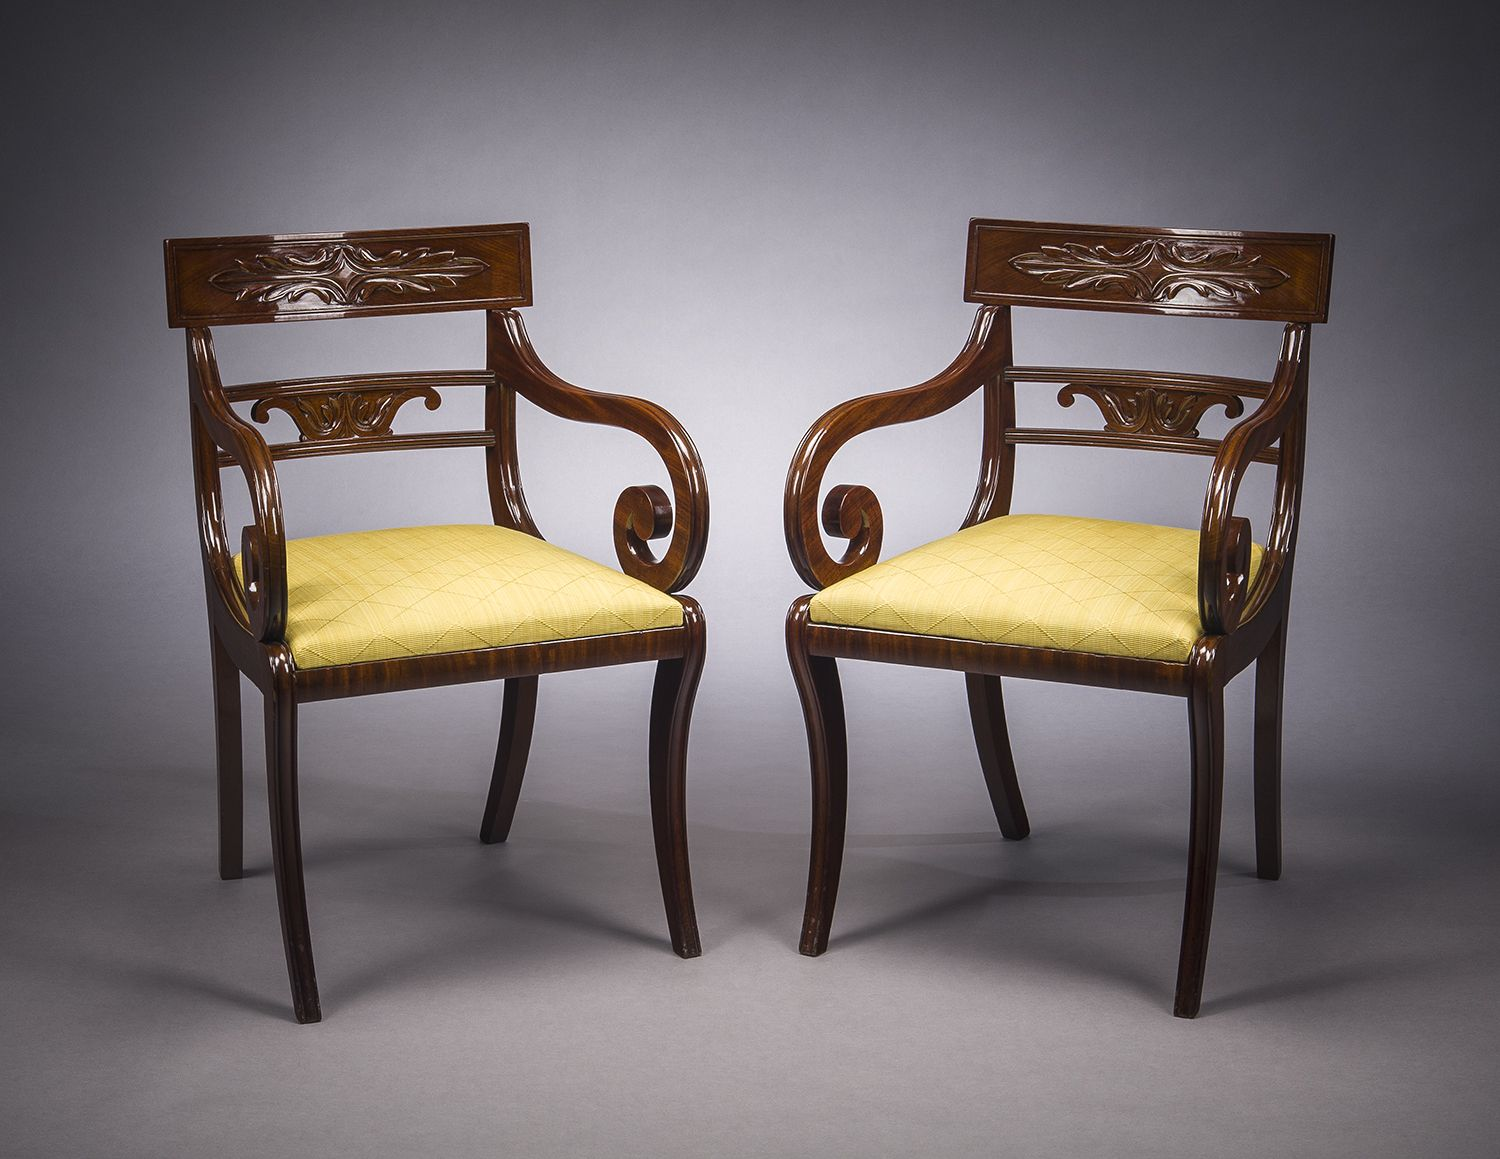 Pair Klismos-form Armchairs, about 1820